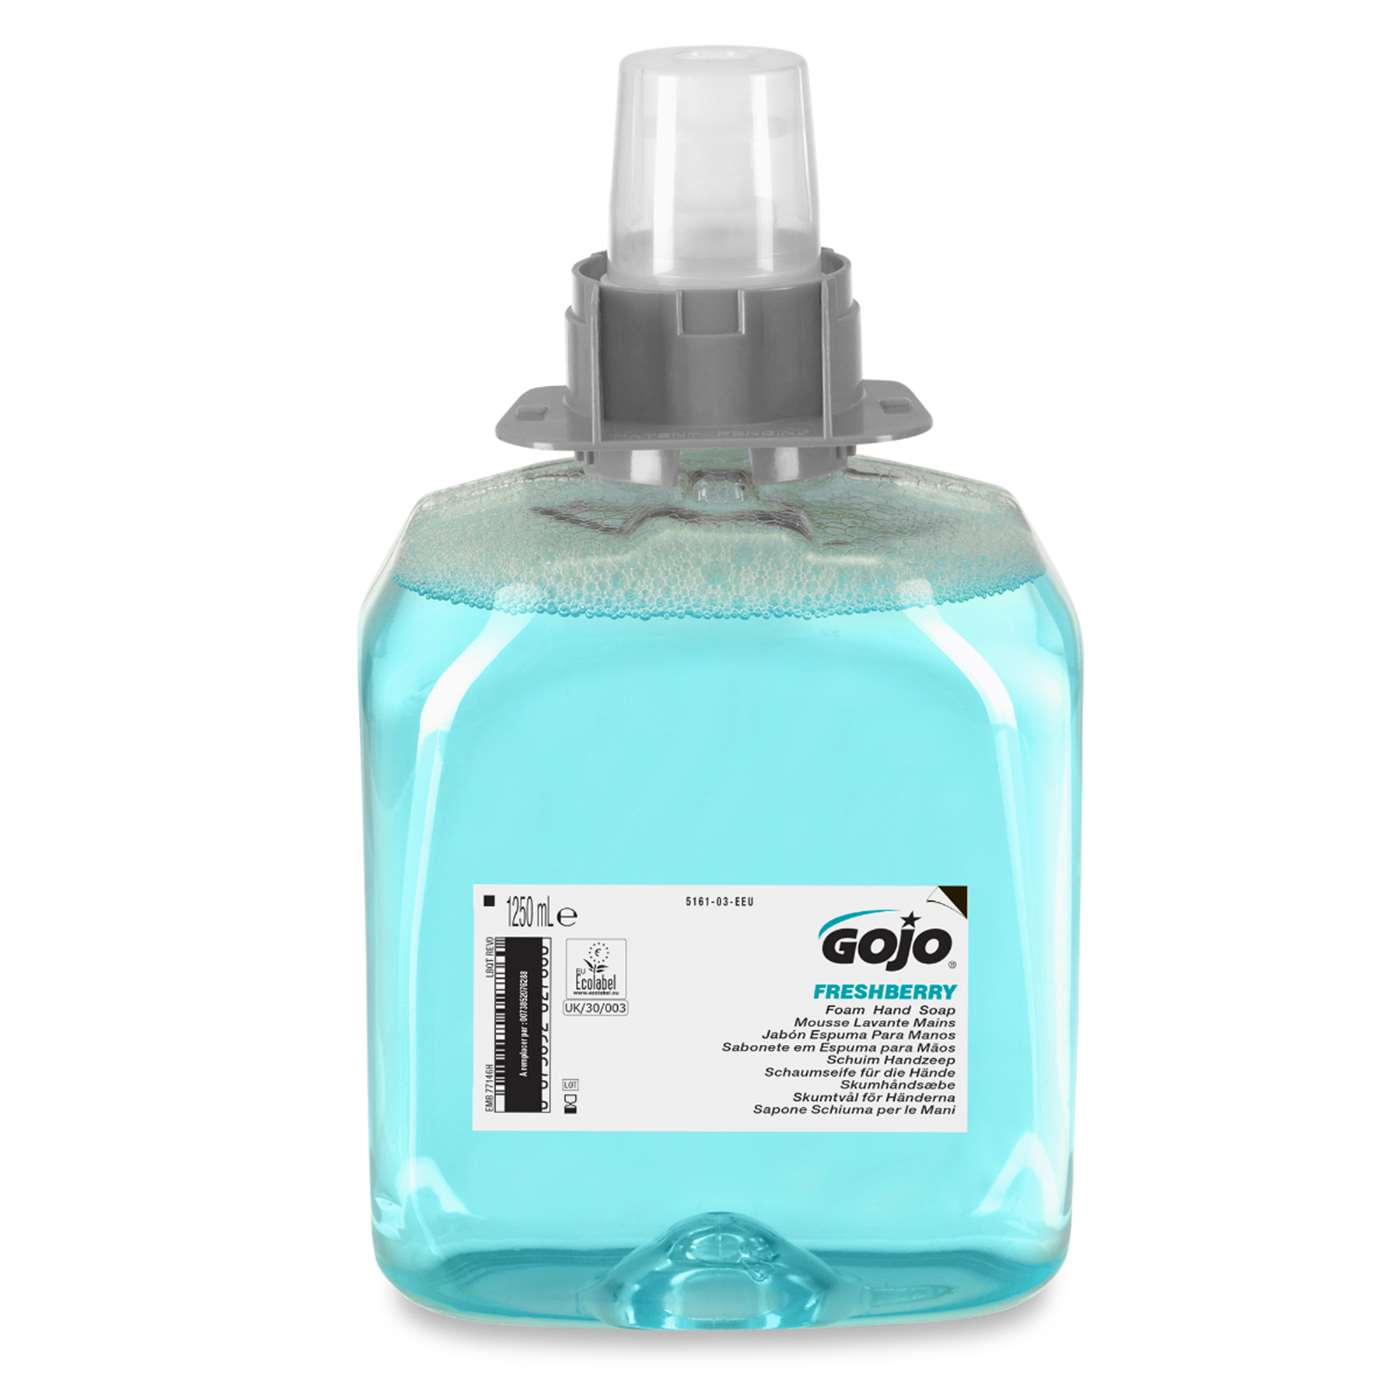 GOJO FMX Freshberry Foam Hand Soap